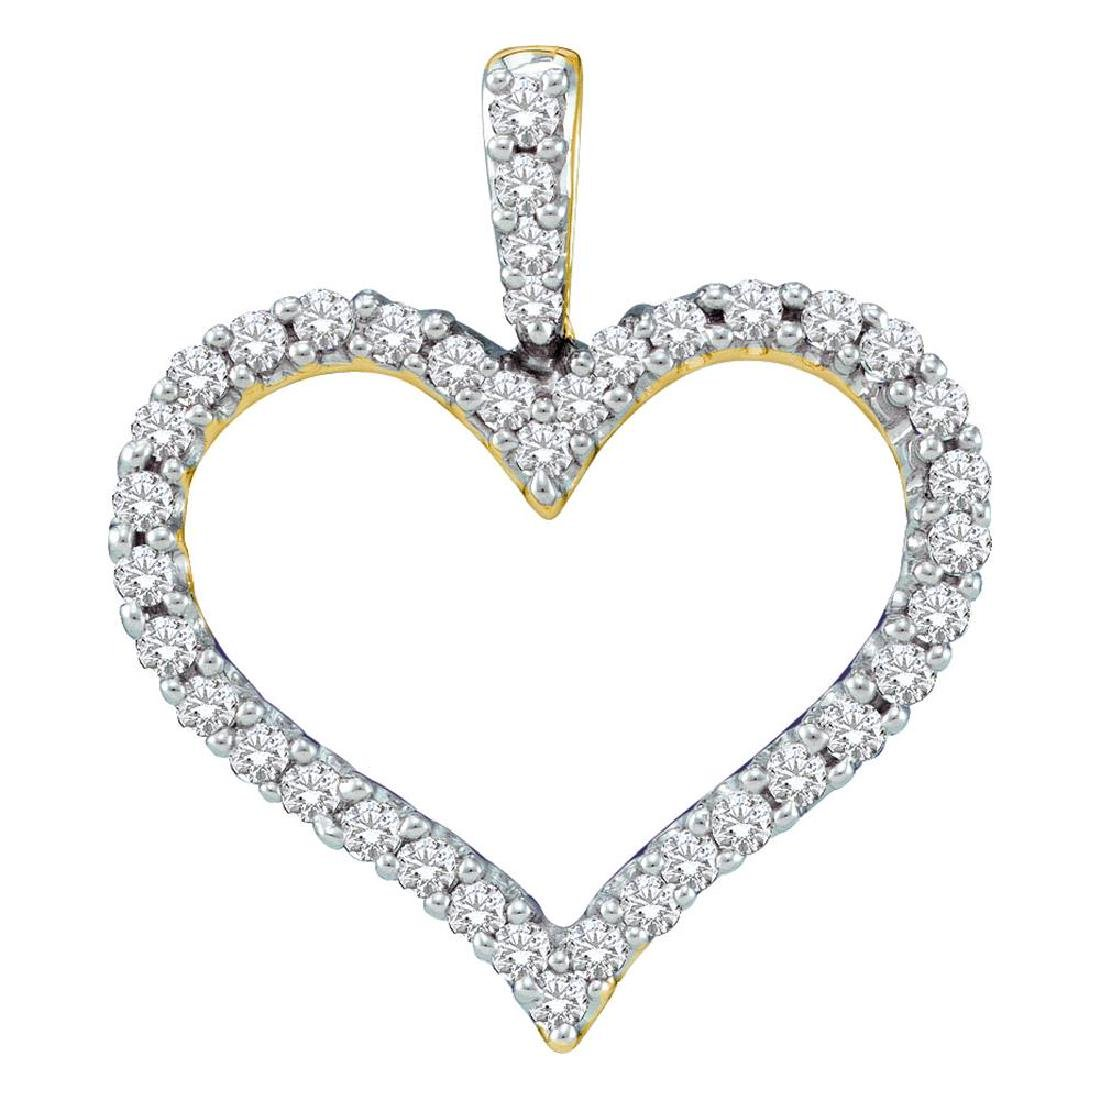 0.45 CTW Diamond Classic Heart Outline Pendant 14KT